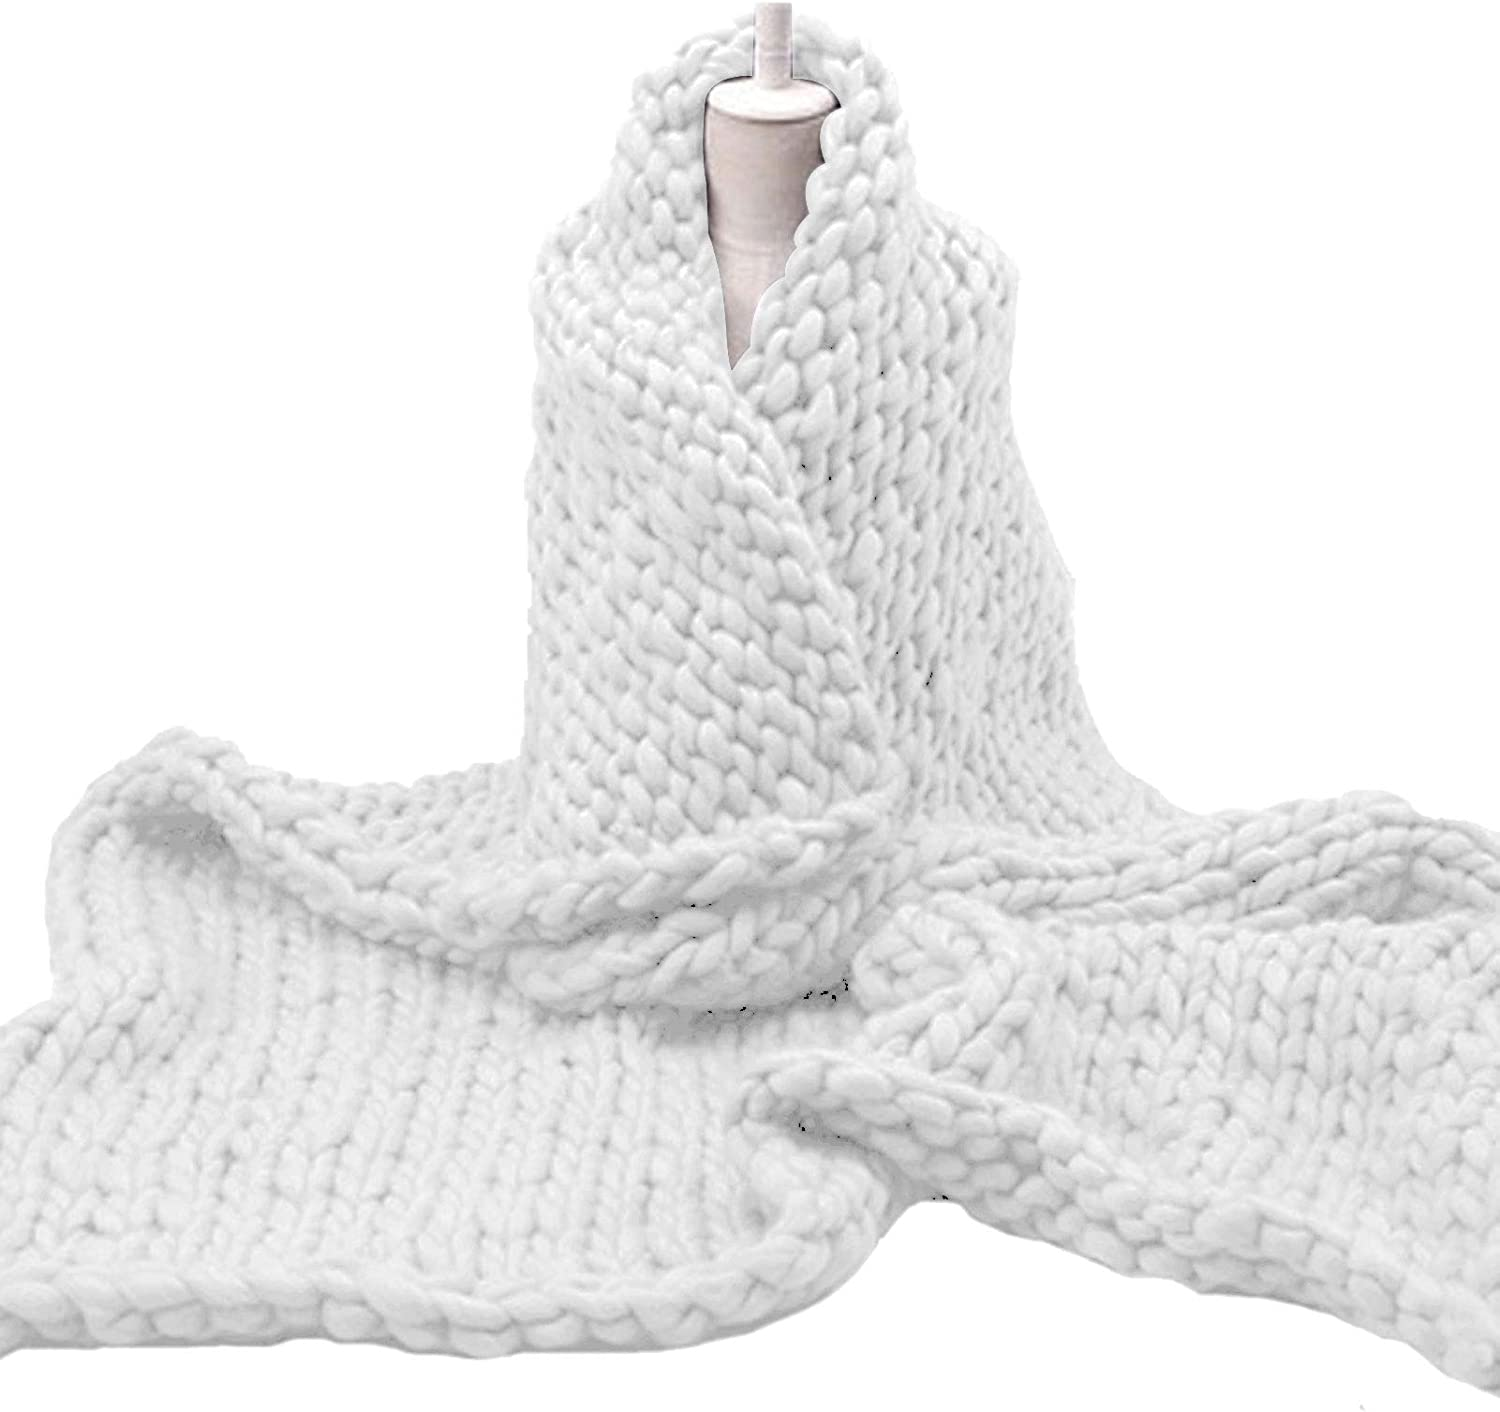 Chunky Knit Blanket Handwoven San Jose Mall Soft Cozy So Throw Bed Atlanta Mall for